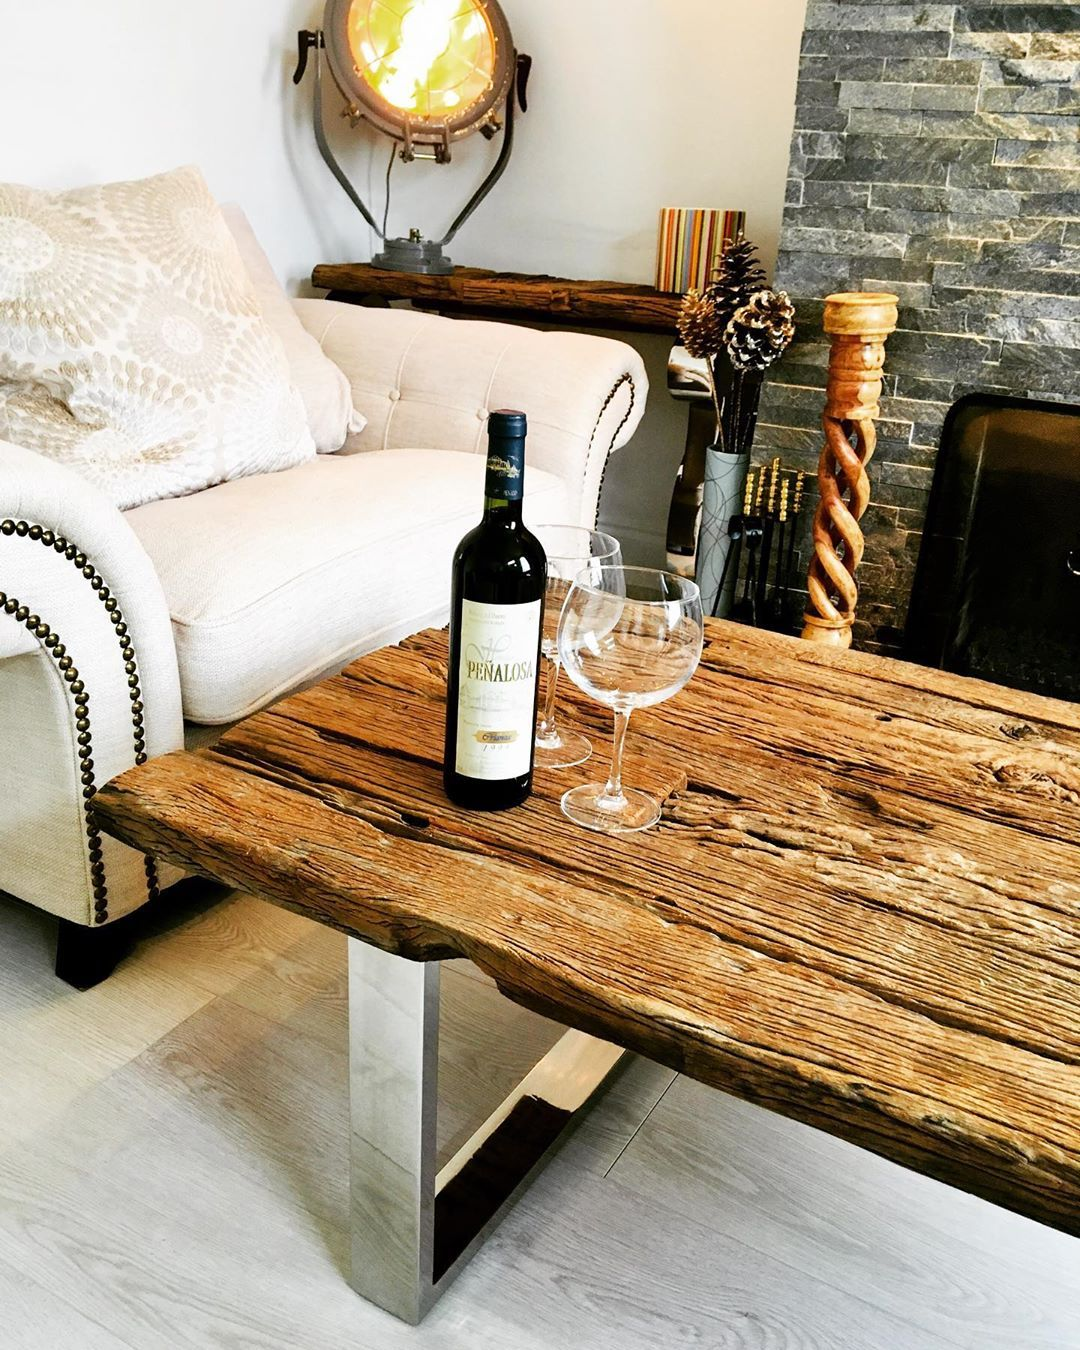 Id Bespoke Ivan Dazarts On Instagram Stunning Contemporary Coffee Table With Reclaimed Wood Top Combined With Contemporary Coffee Table Coffee Table Table [ 1350 x 1080 Pixel ]